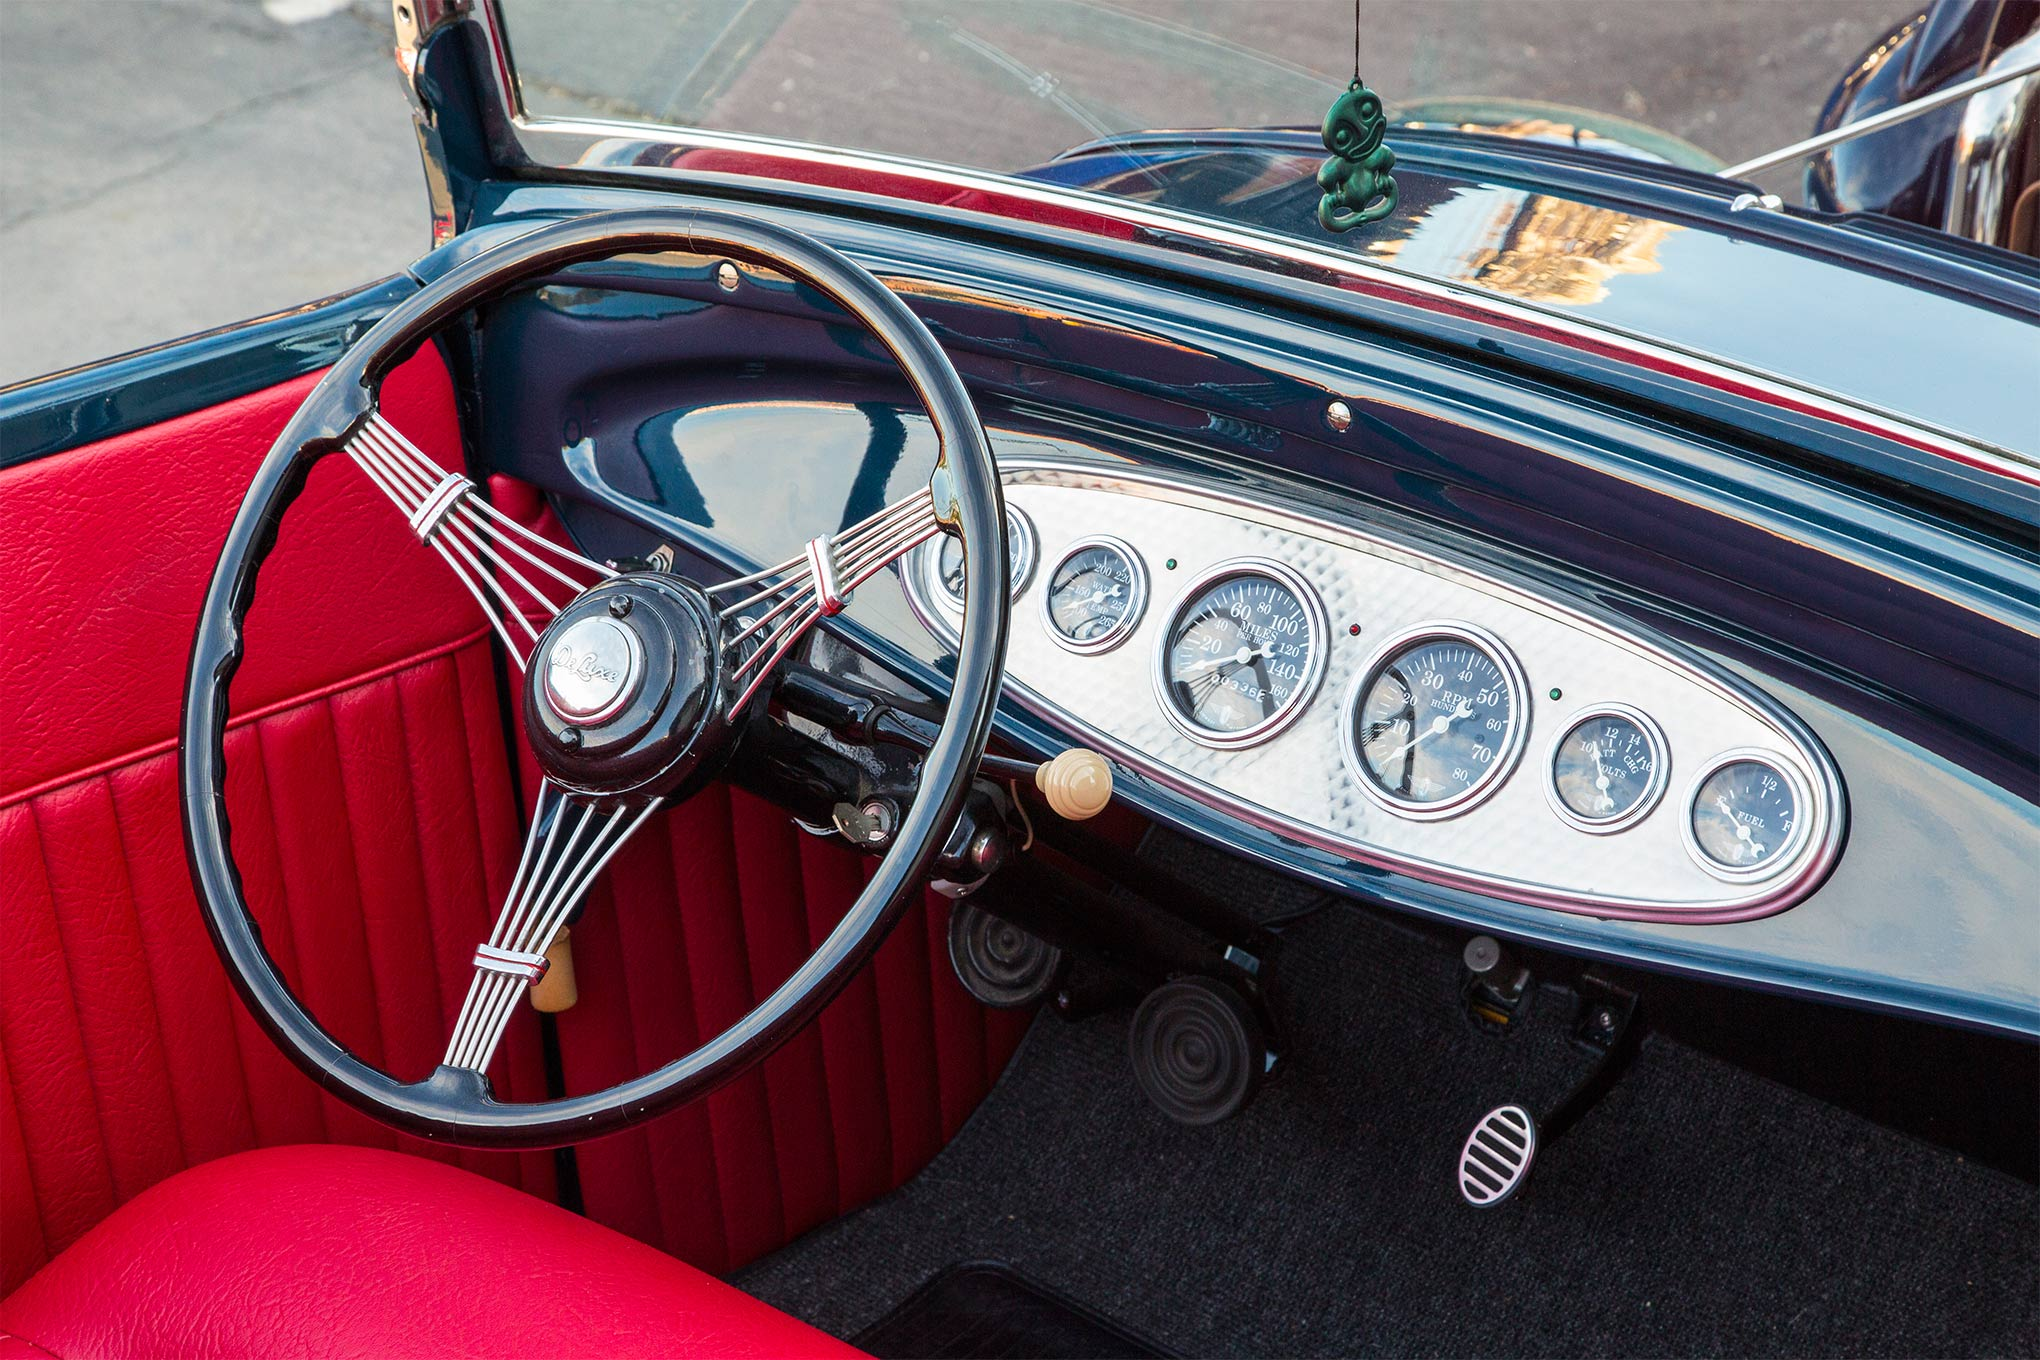 The '32 dashboard is home to Stewart-Warner curved-glass gauges. A '39 Ford banjo wheel is attached to a '46 Ford truck column. Steve put together the column shift mechanism, as he didn't want a shifter on the floor.